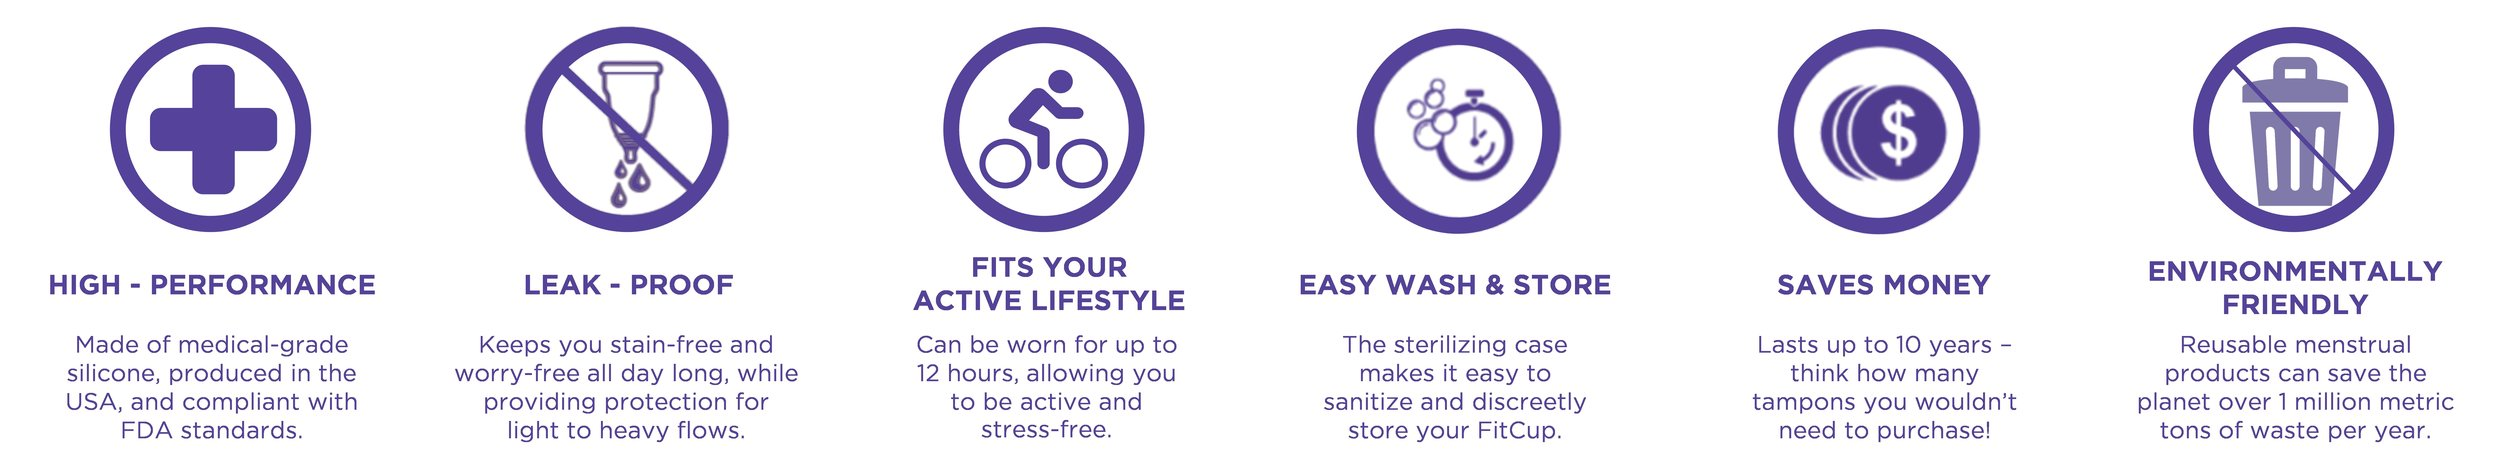 FitCup - High-Performance, Leak-Proof, Active Lifestyle, Easy Wash & Store, Save Money, Environmentally Friendly.jpg